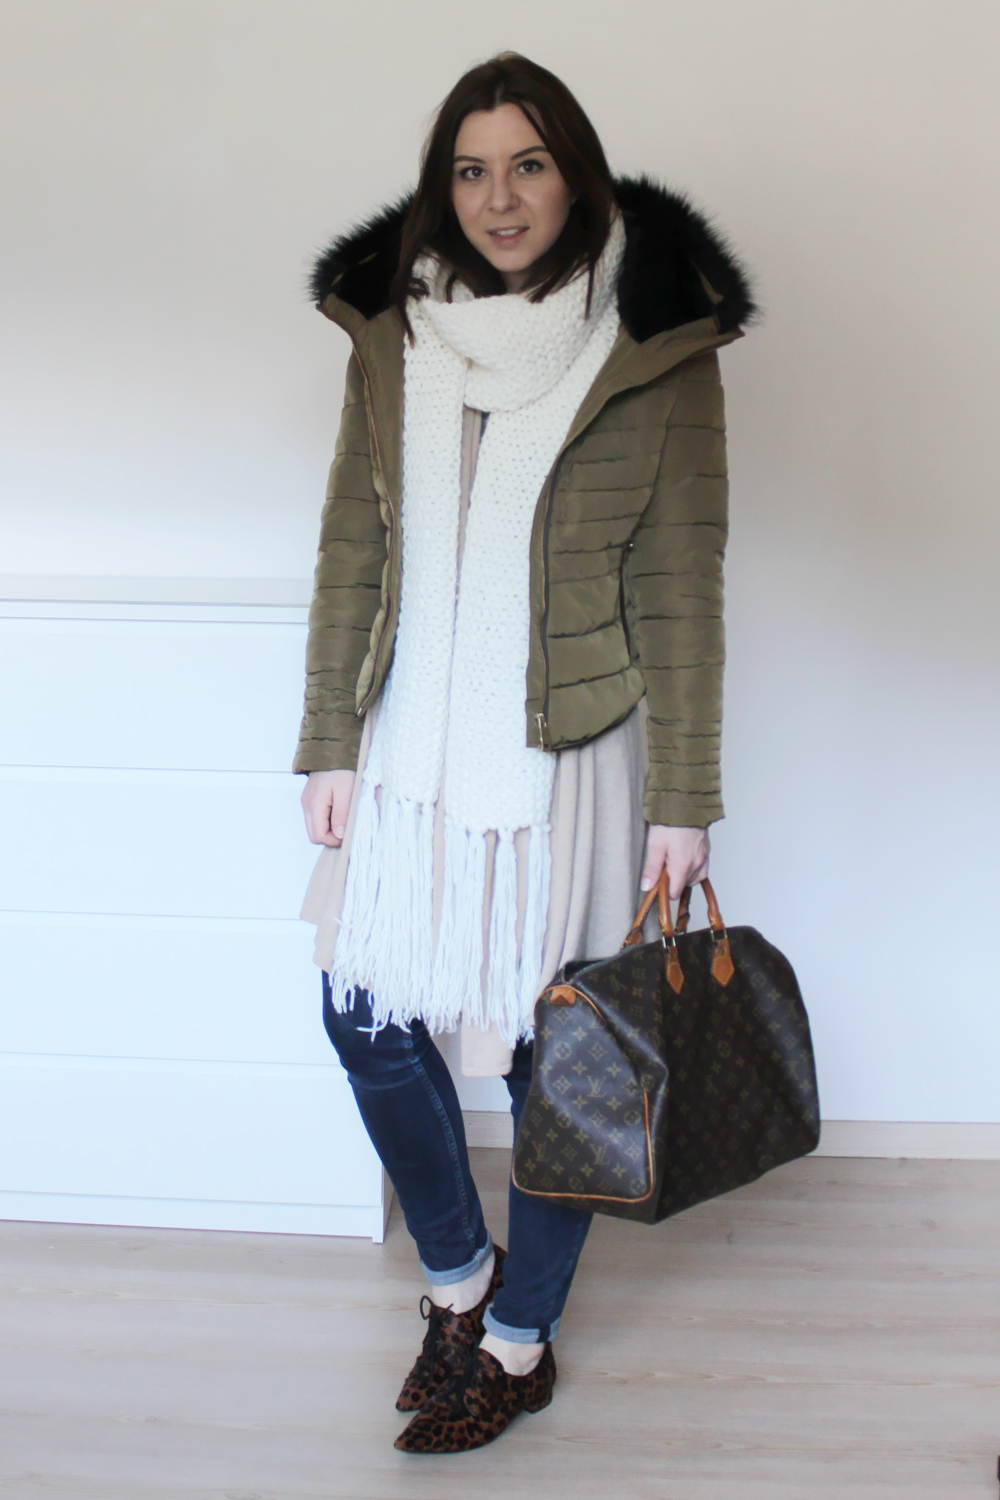 who is mocca, fashionblog, blogger tirol, weekly wardrobe review, everyday look, alltagsoutfit, buerooutfits